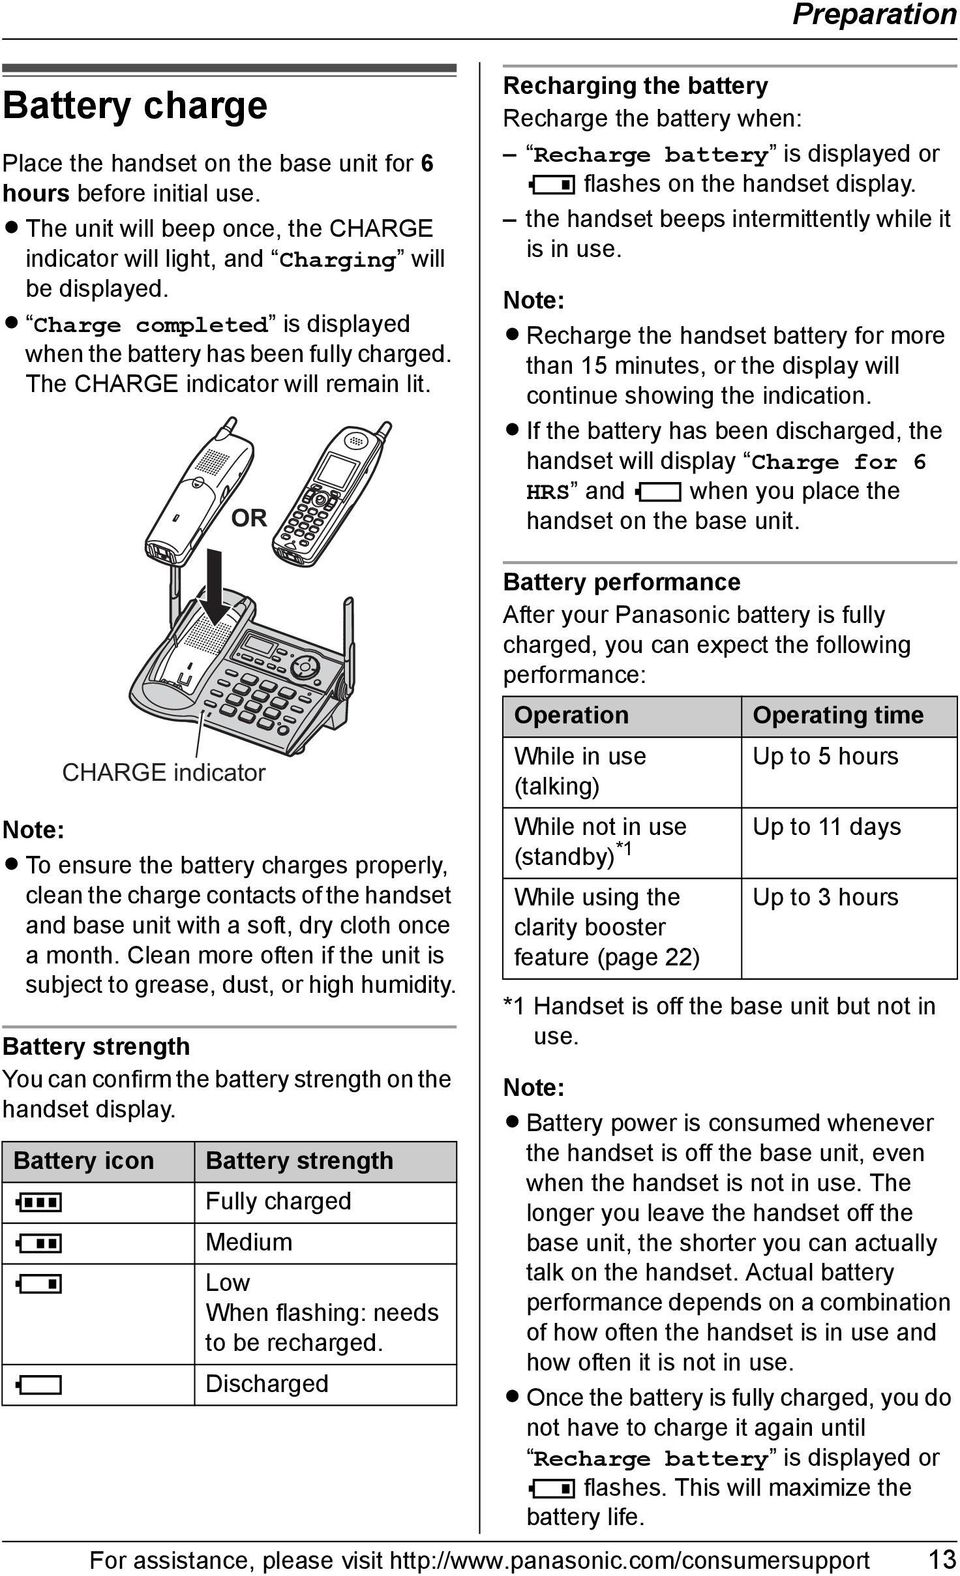 OR Recharging the battery Recharge the battery when: Recharge battery is displayed or 3 flashes on the handset display. the handset beeps intermittently while it is in use.